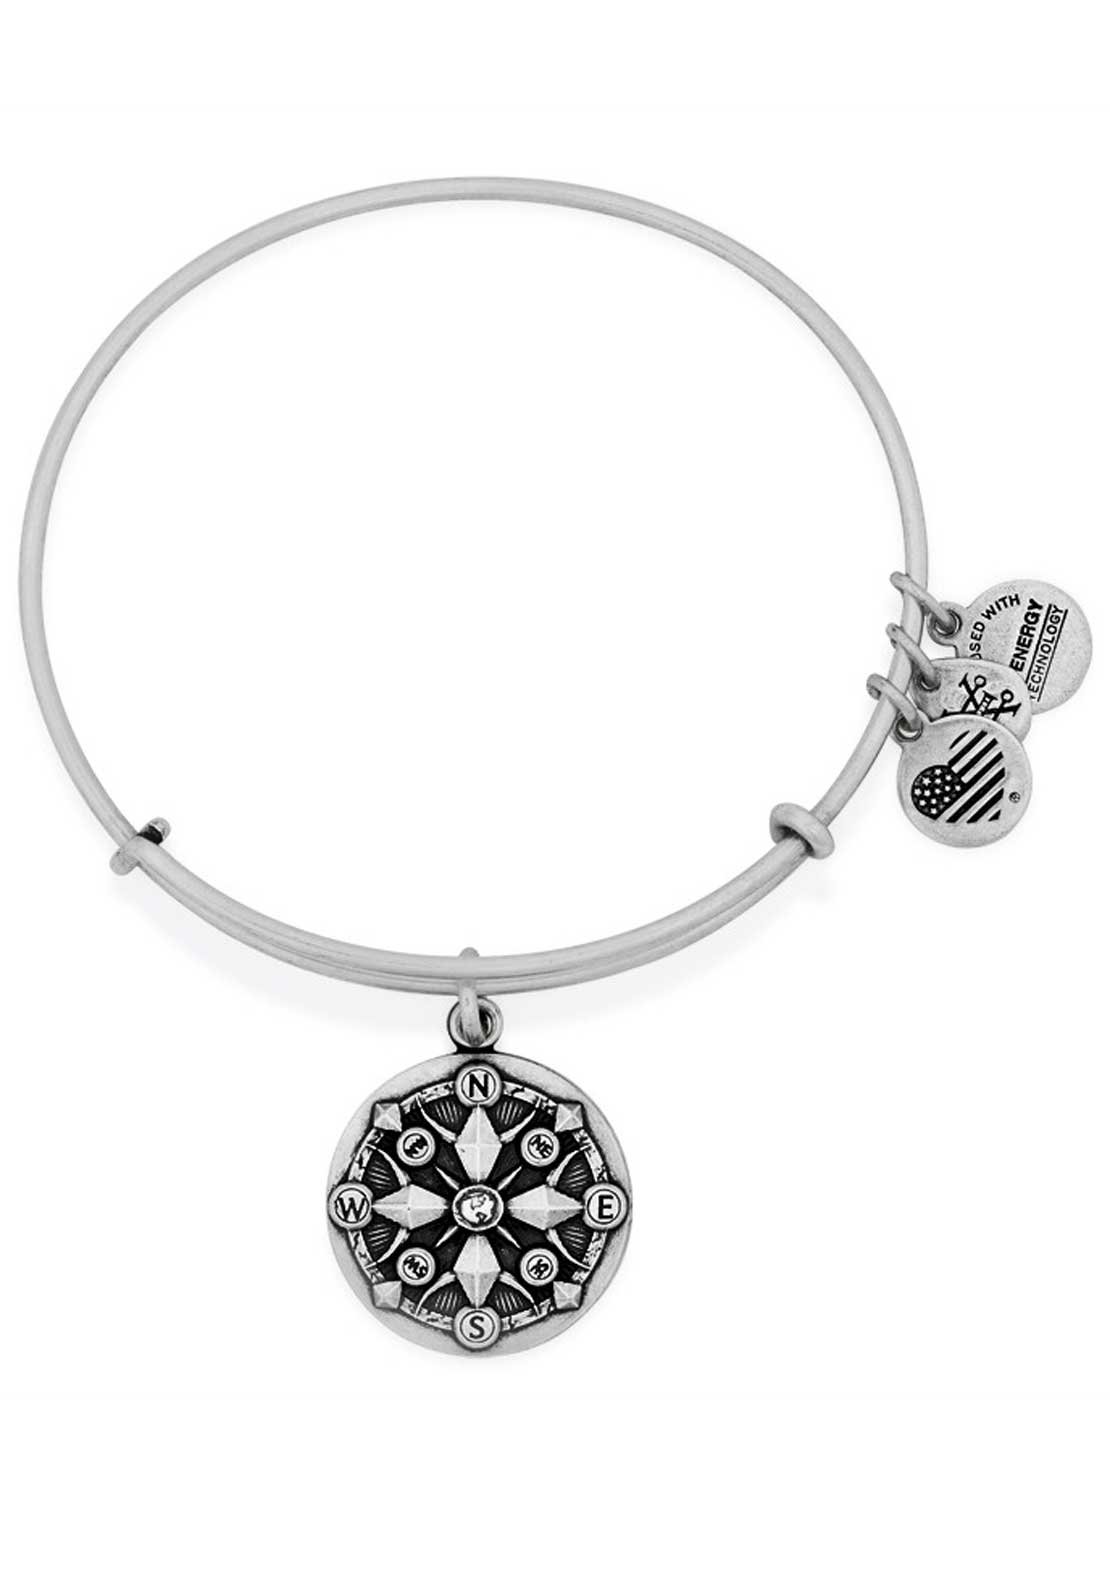 Alex and Ani Compass Bracelet, Silver